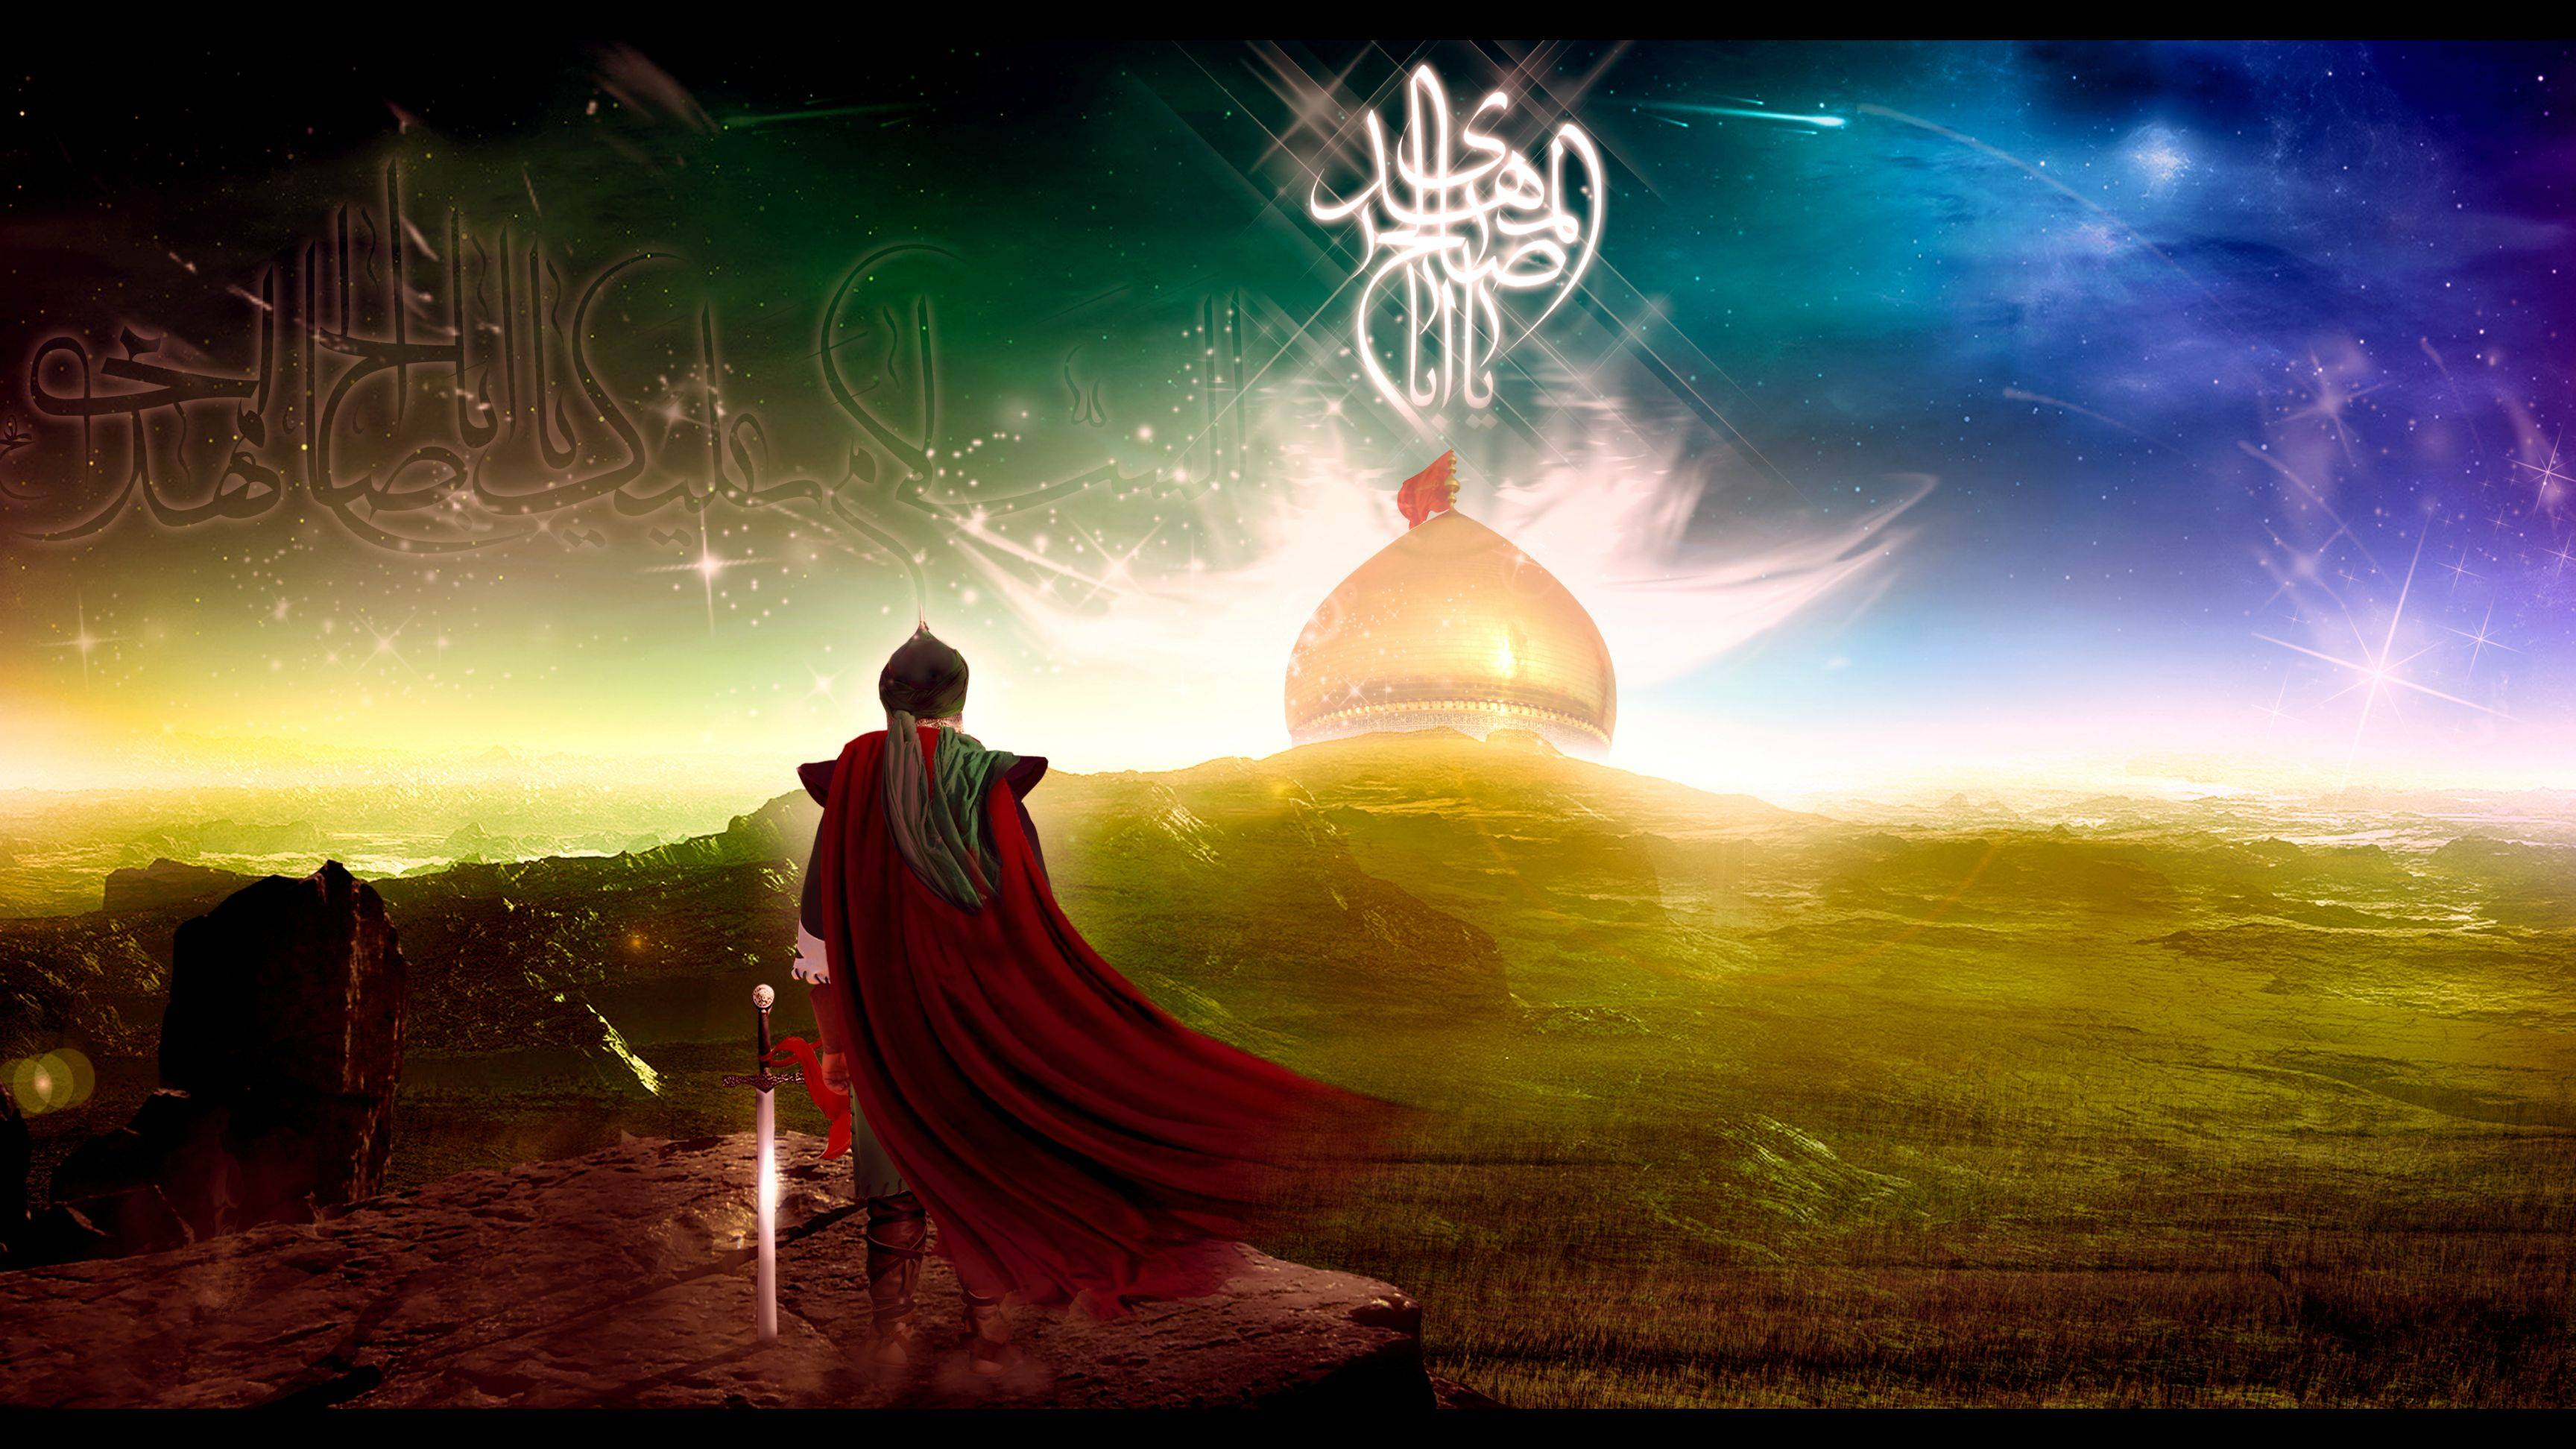 48 shia wallpapers on wallpapersafari - Imam wallpaper ...